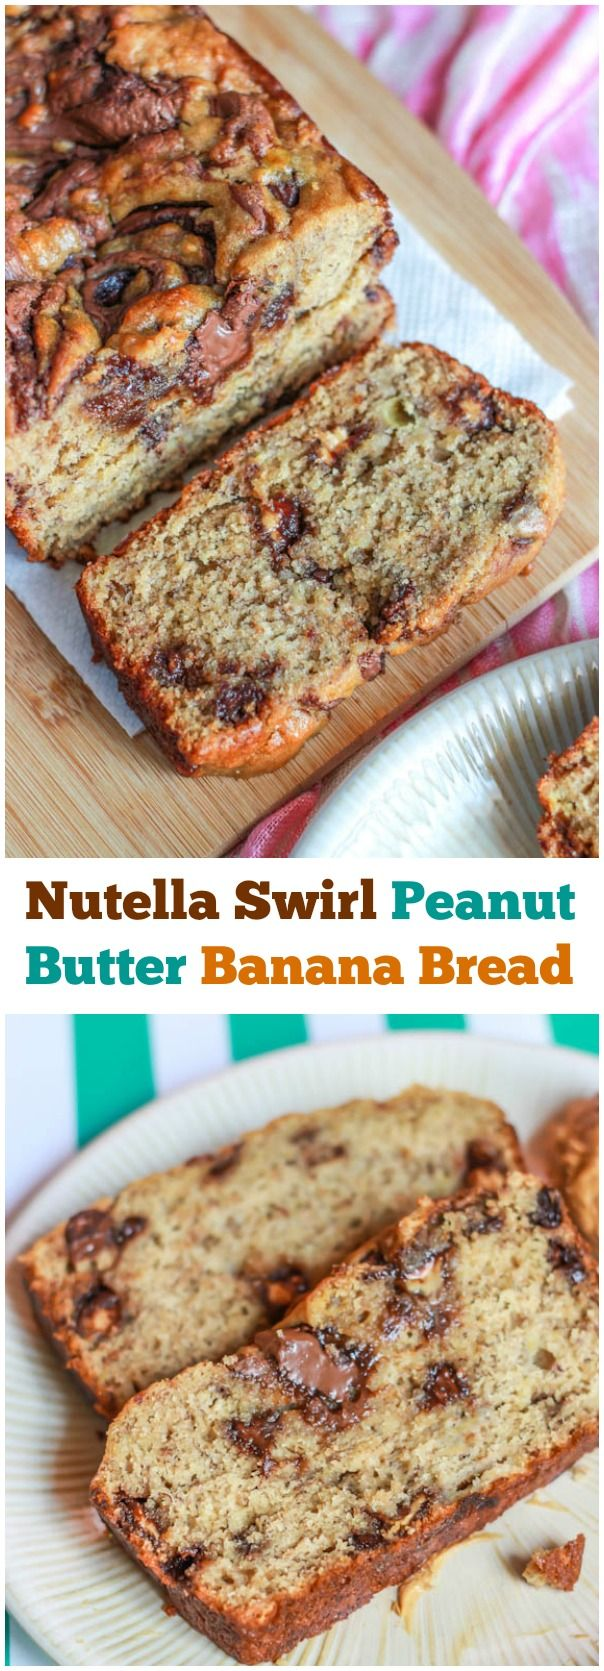 Super-moist banana bread swirled with Nutella and peanut butter cups. There wont be a crumb leftover!